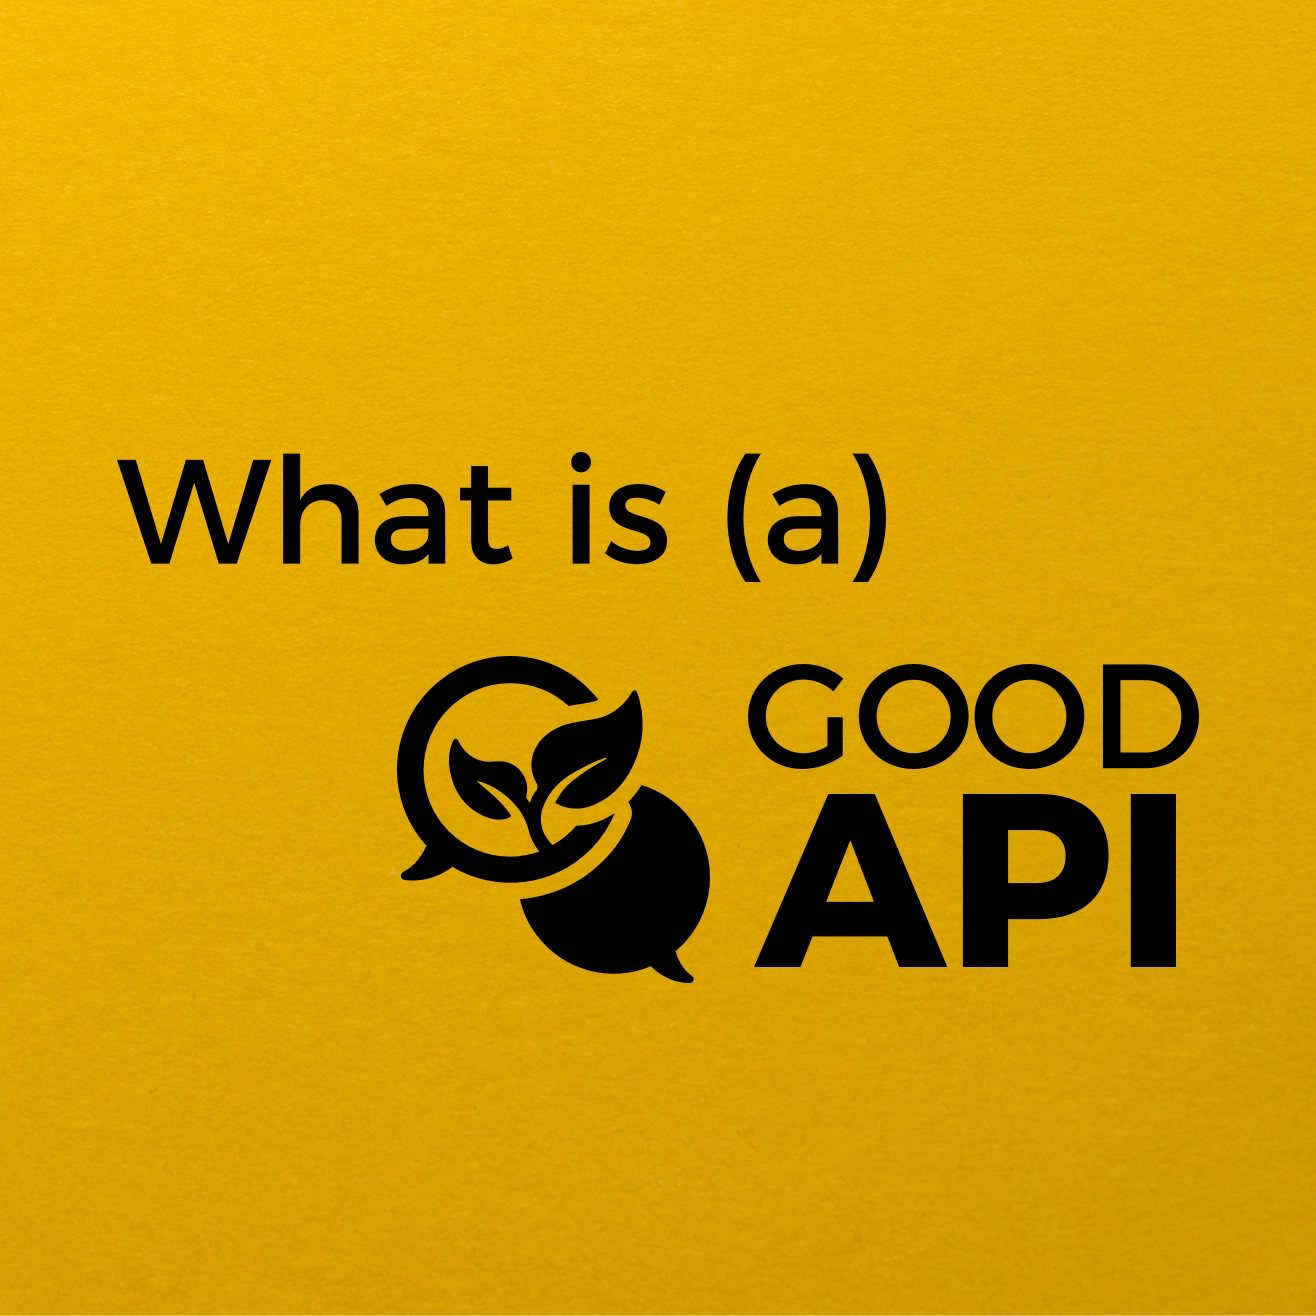 What is (a) Good API